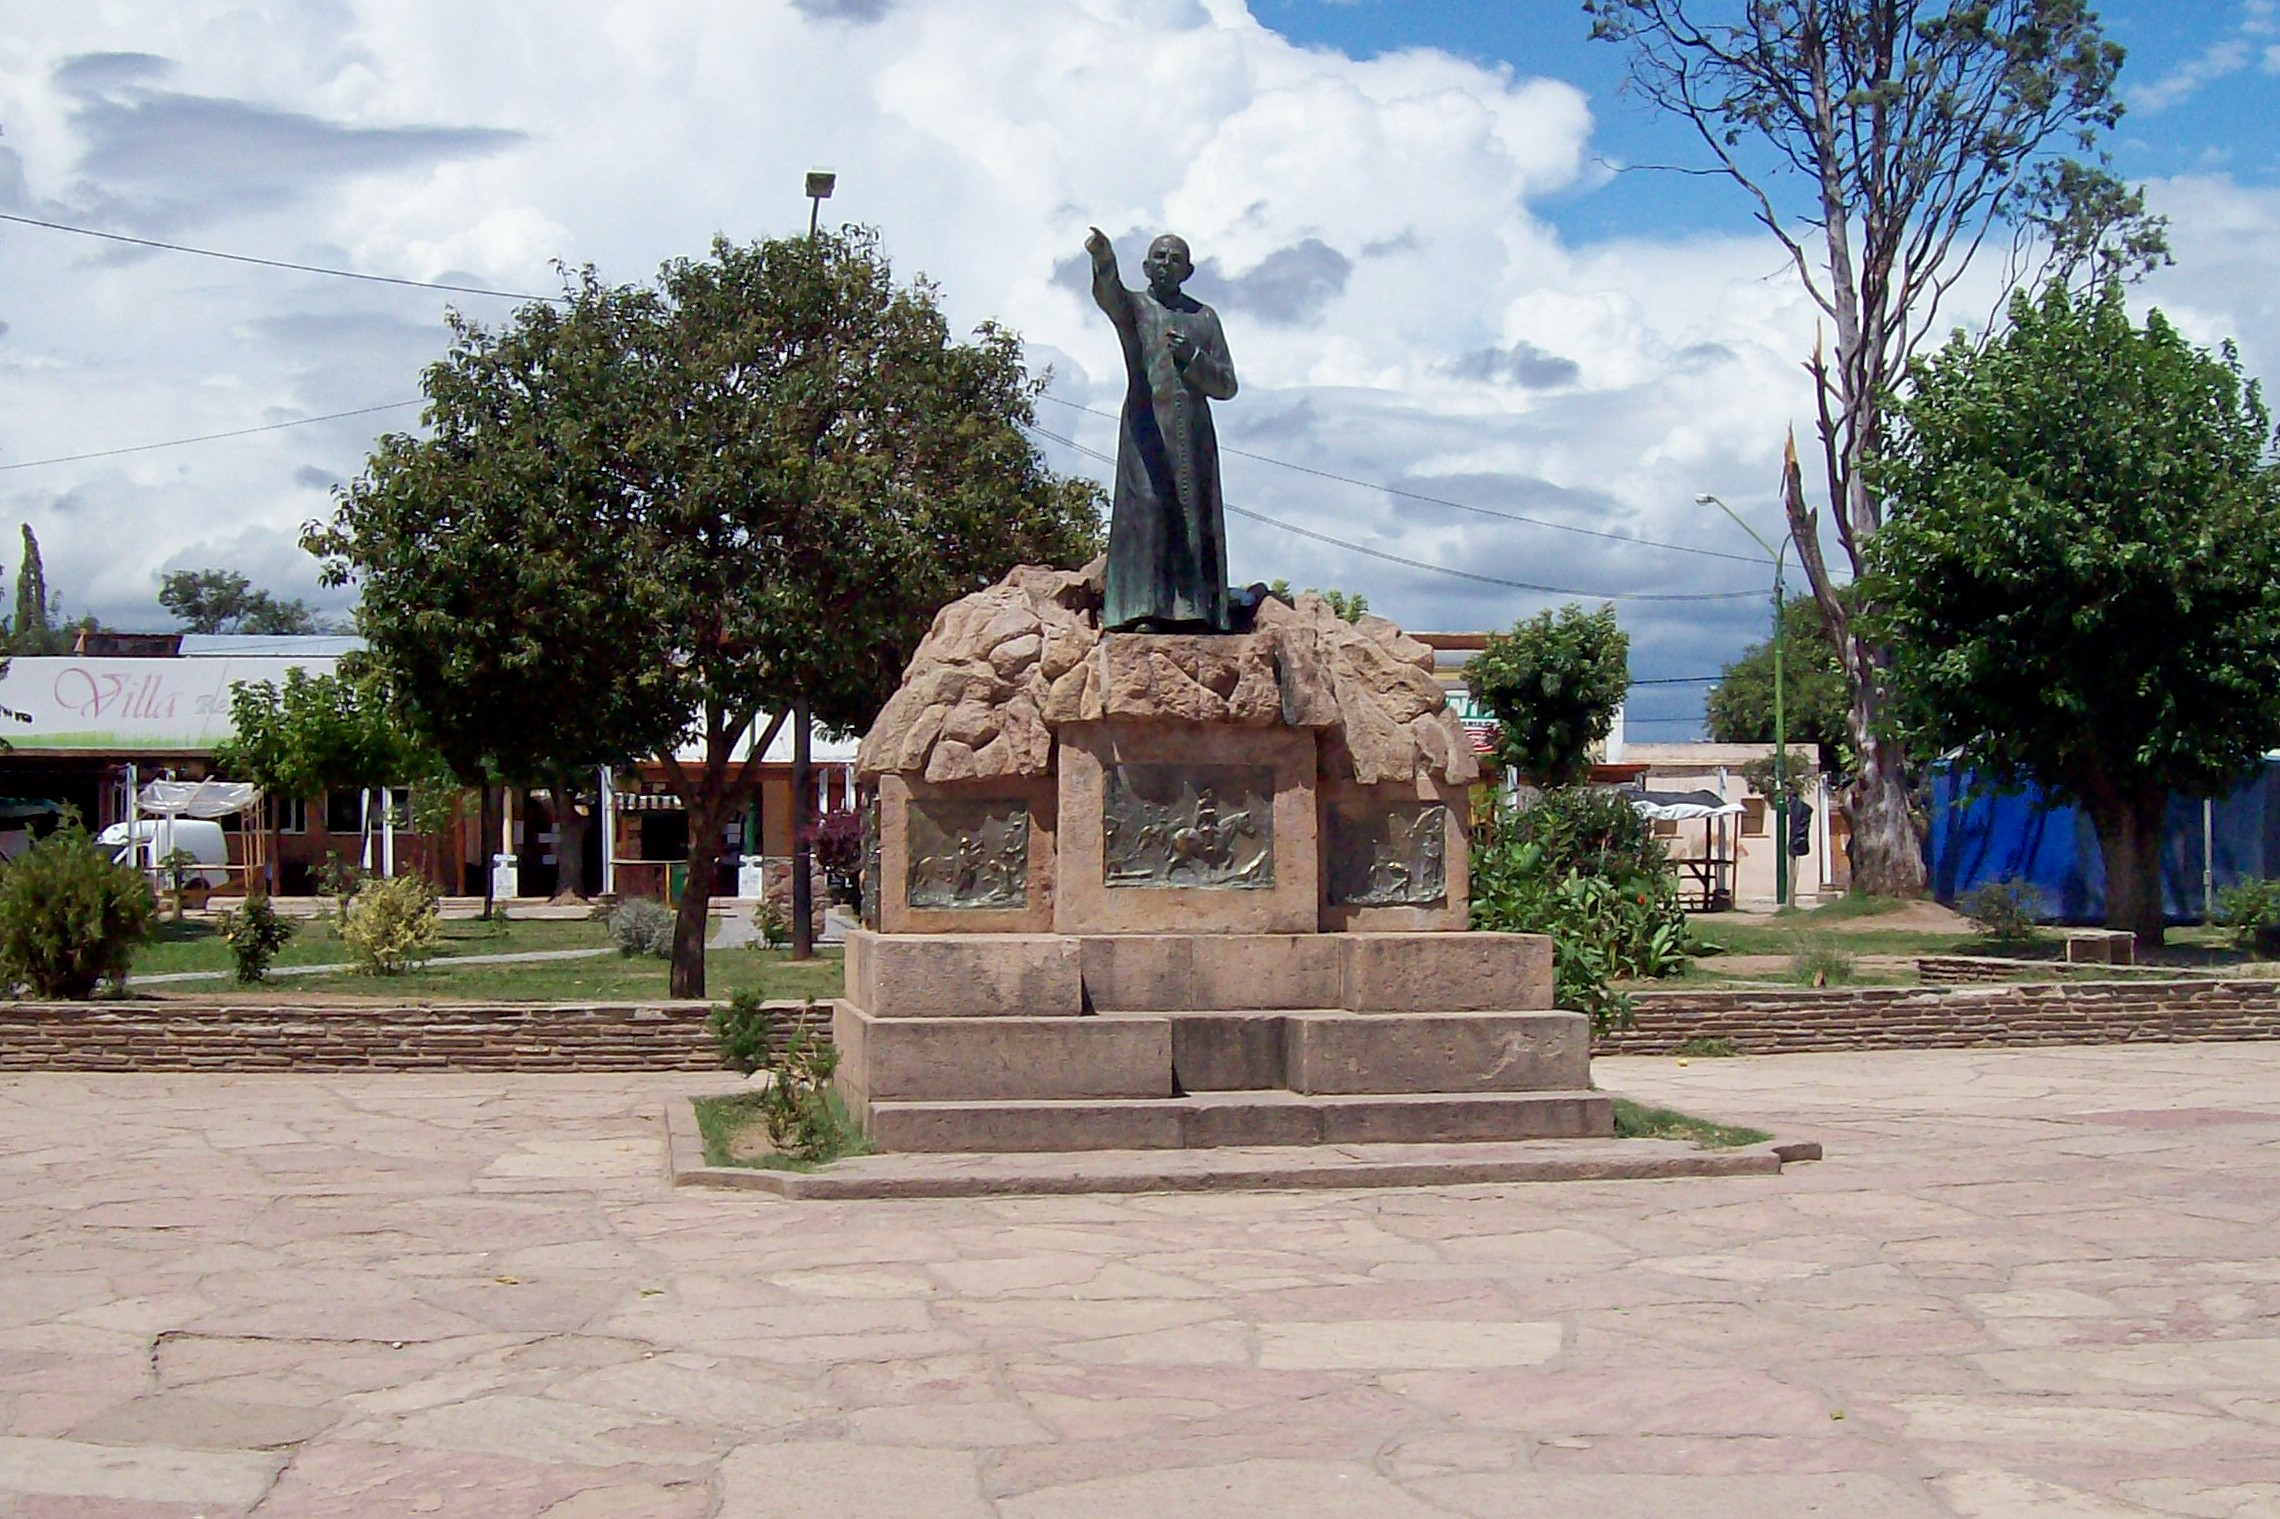 Monument over Cura Brochero på Plaza Centenario i Villa Cura Brochero